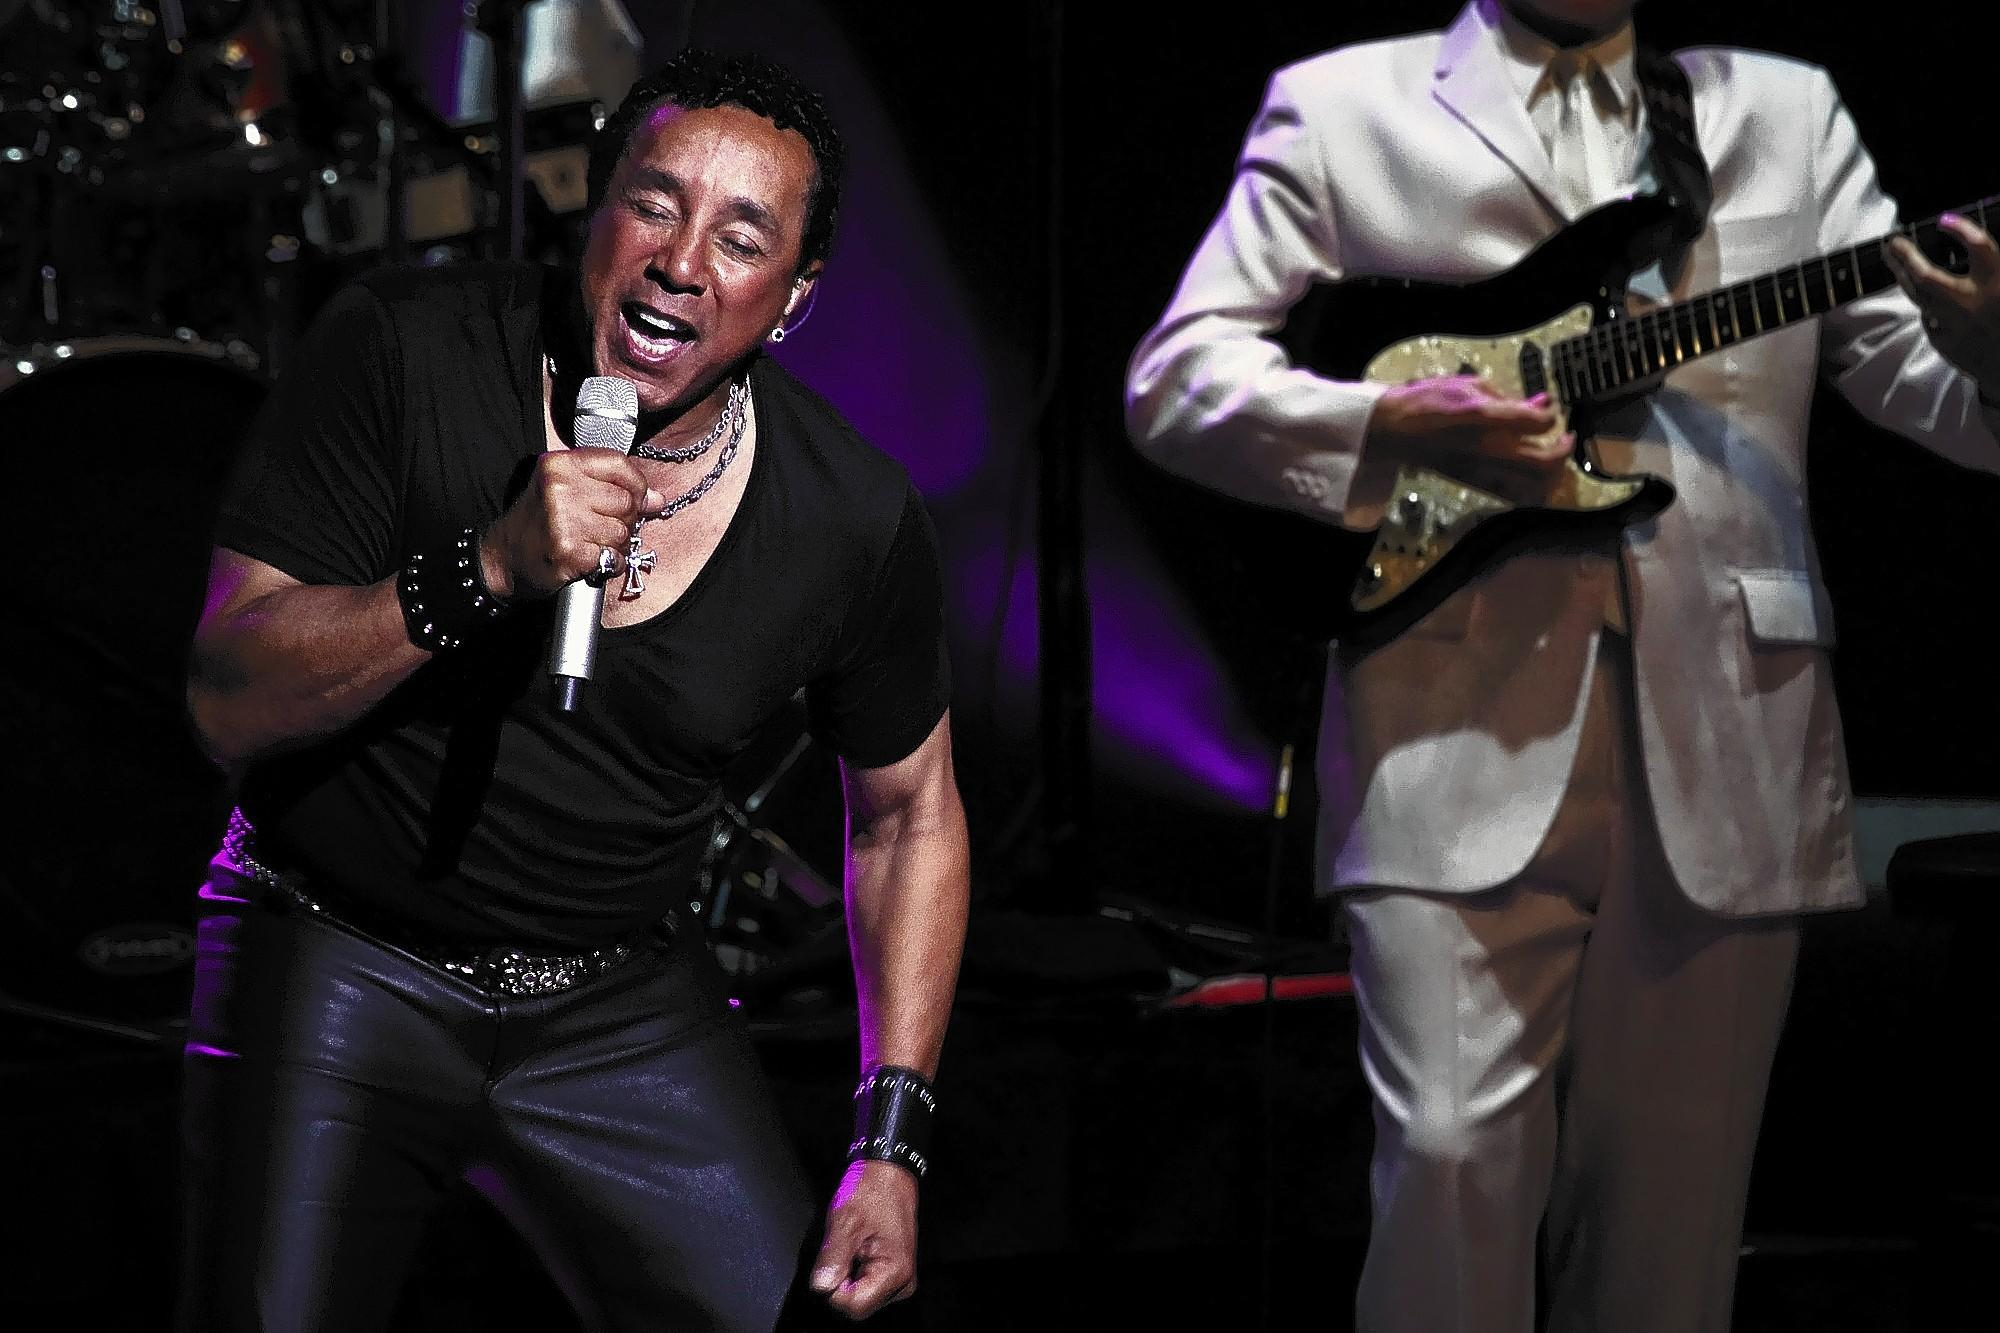 Smokey Robinson croons through his hits at a performance at the Ferguson Center for the Arts in Newport News last week.